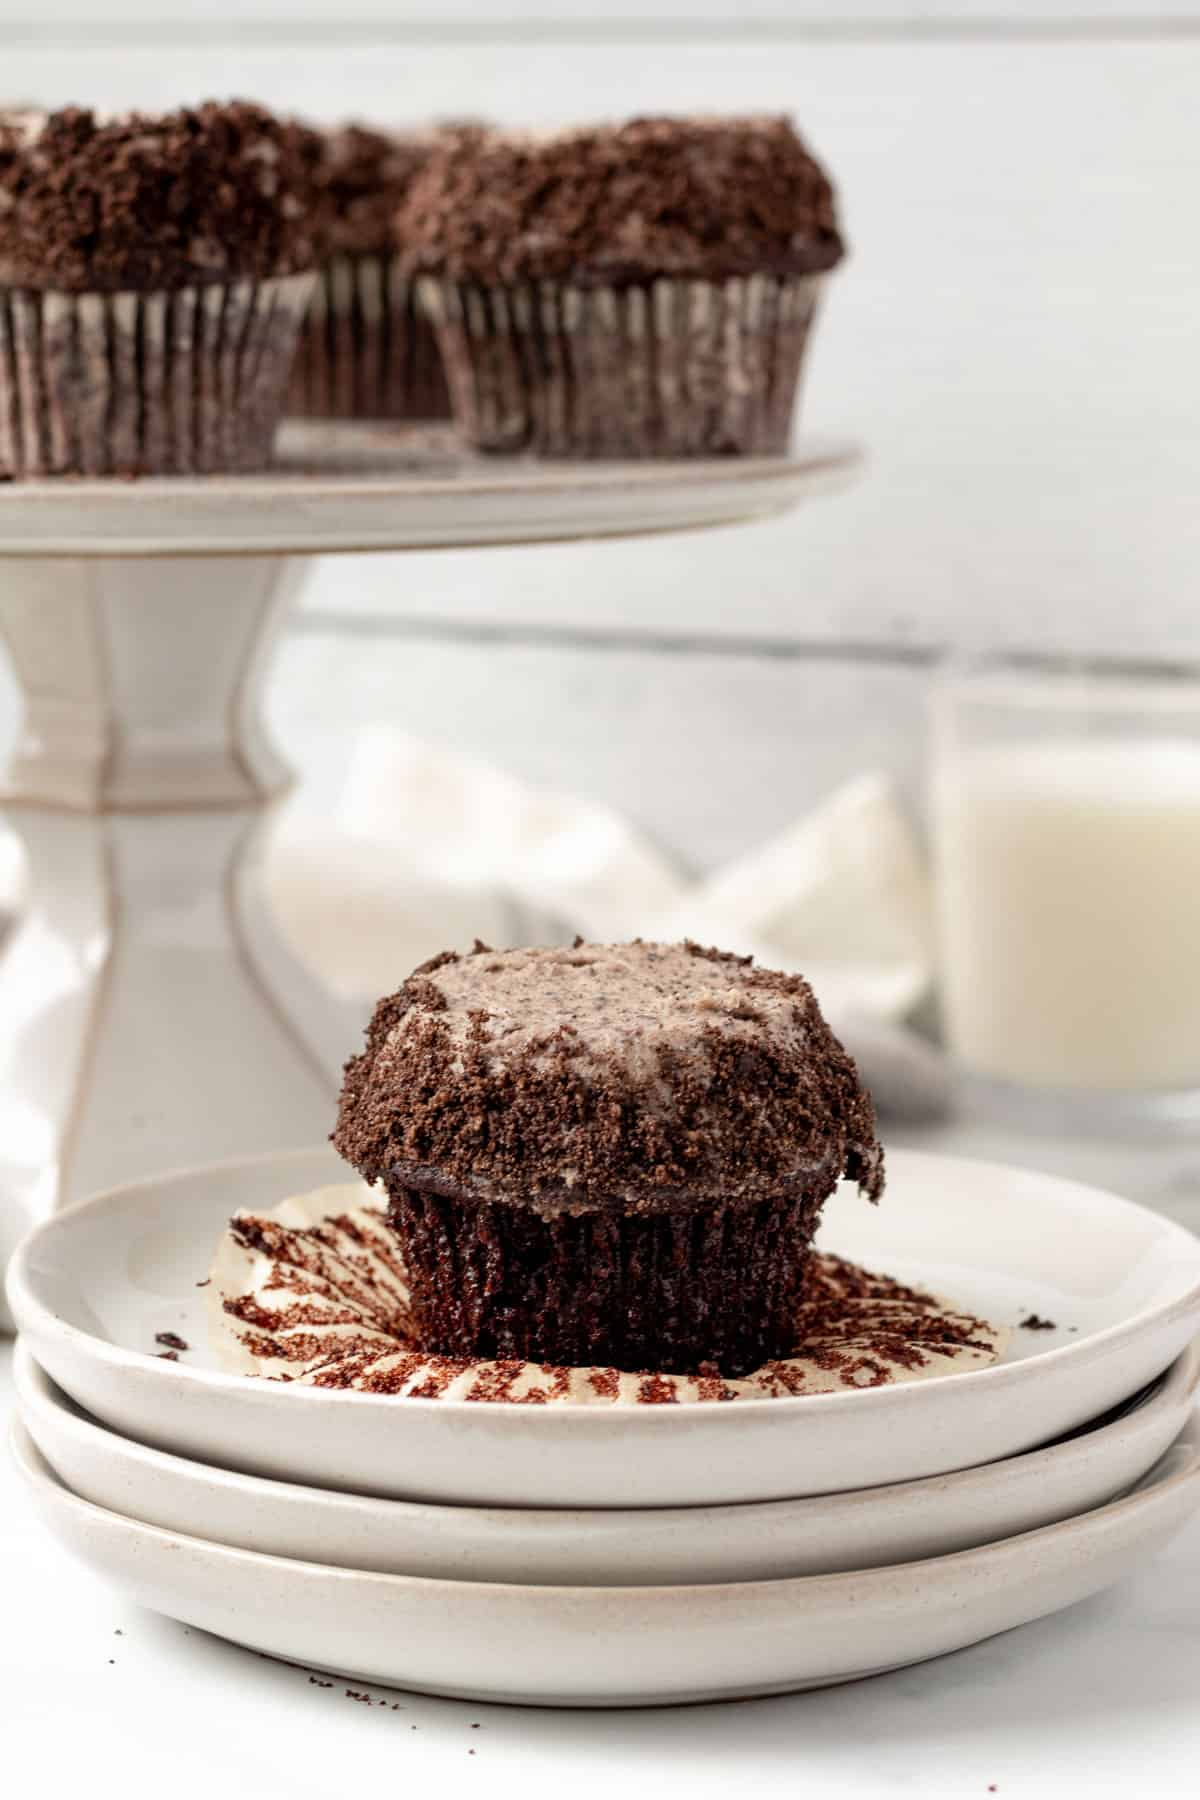 chocolate cupcake with oreo buttercream sitting on a stack of plates with glass of milk in background